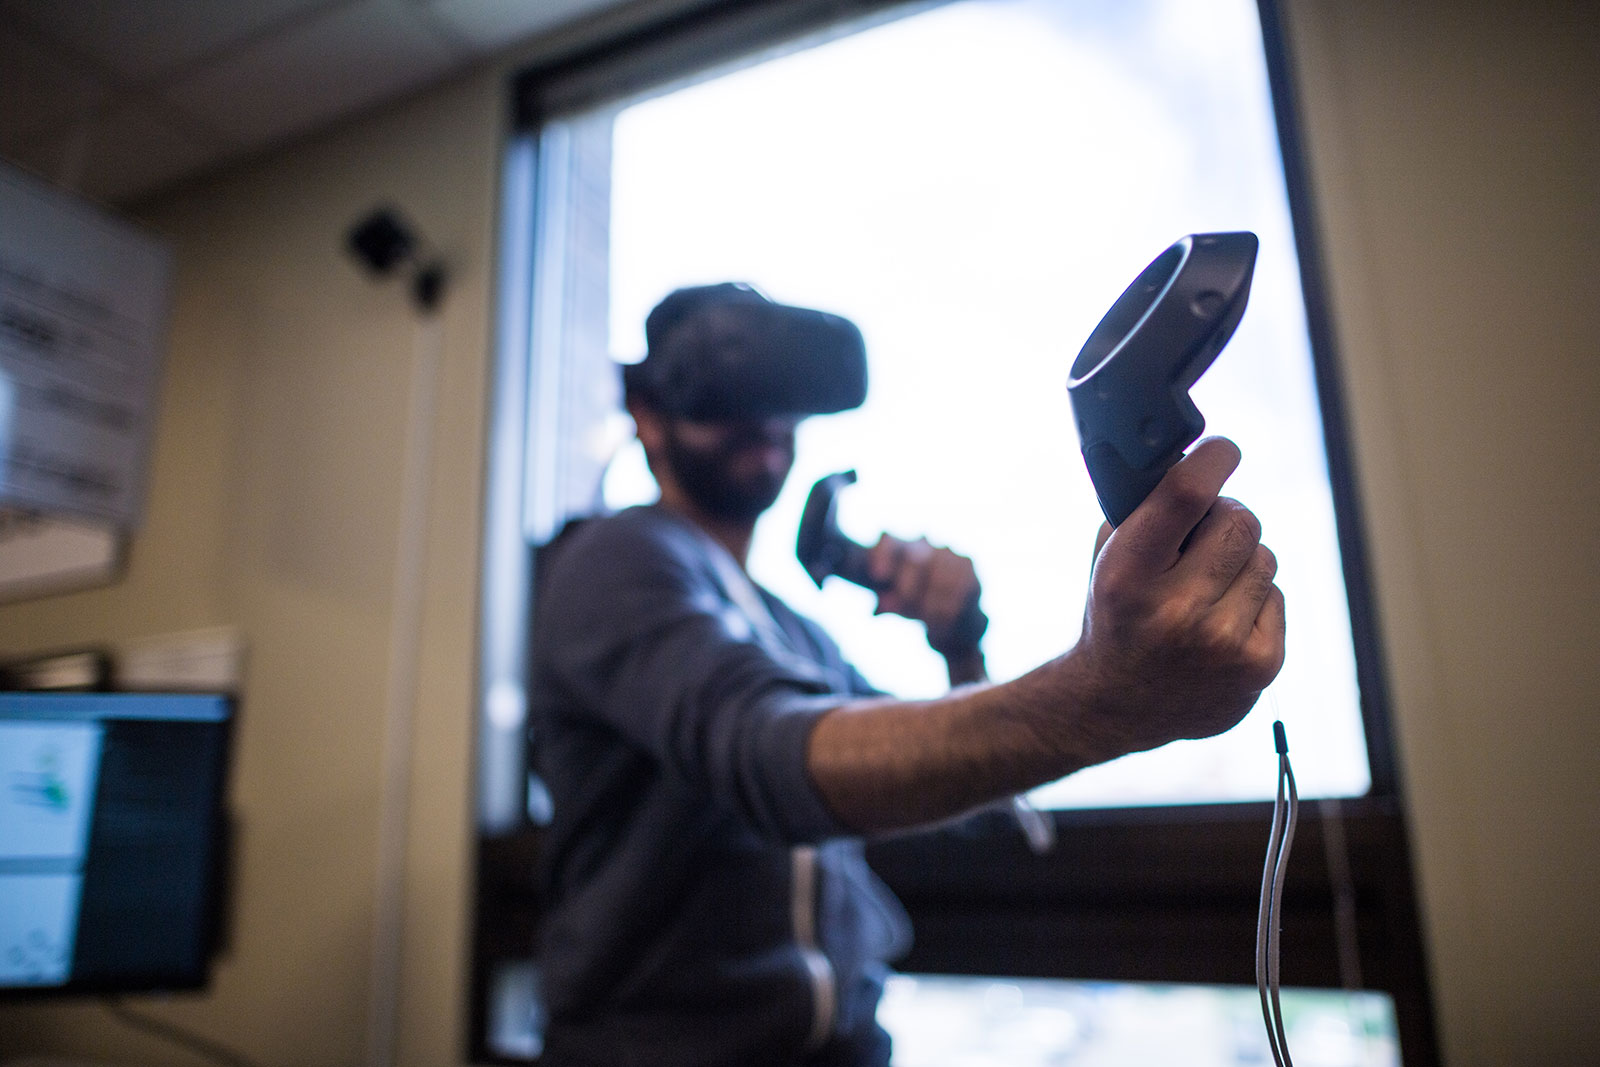 Neurable's technology will first launch in the gaming world, making augmented reality and virtual reality easier to control. Photo by Austin Thomason, Michigan Photography.